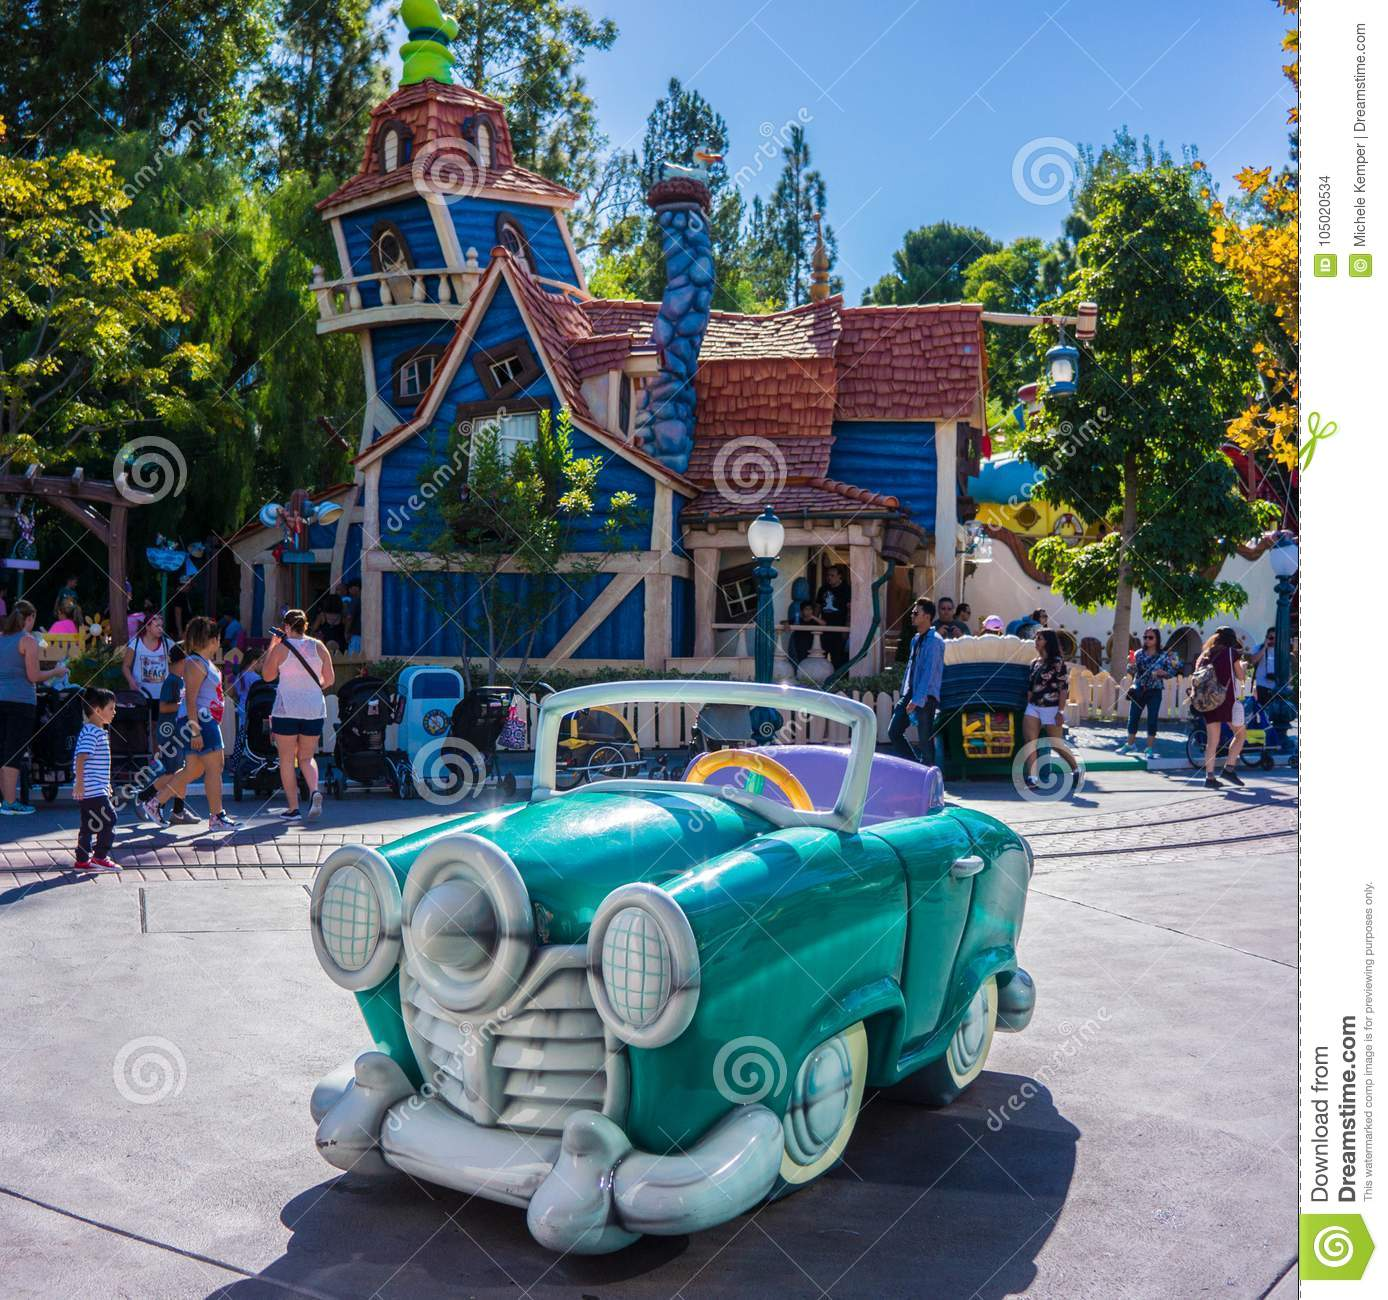 Disneyland ToonTown Anaheim California